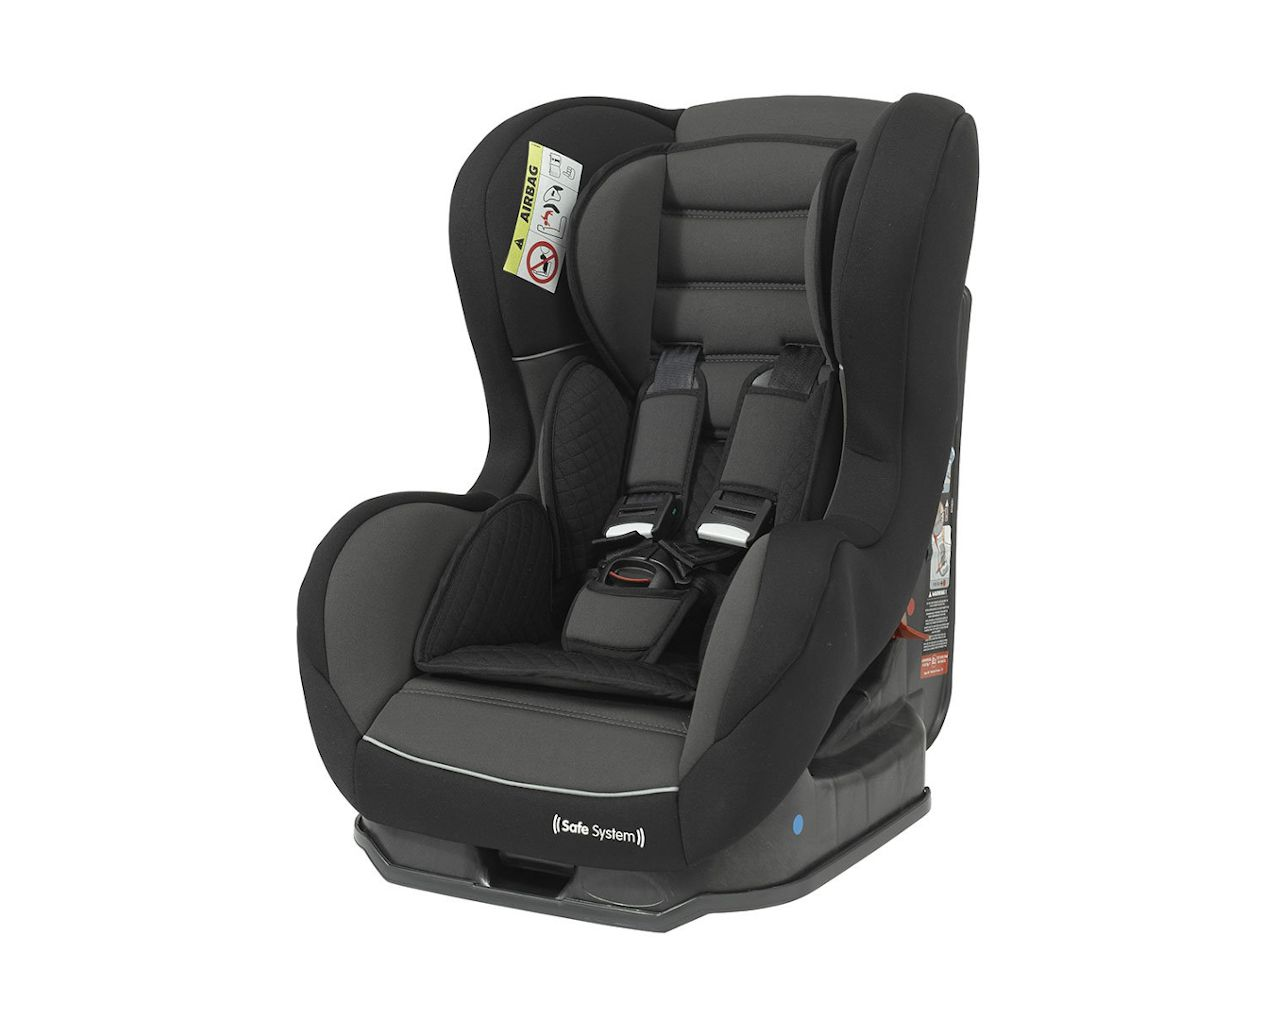 Baby Booster Seat, Child Booster Seats - Rent a Car Crete